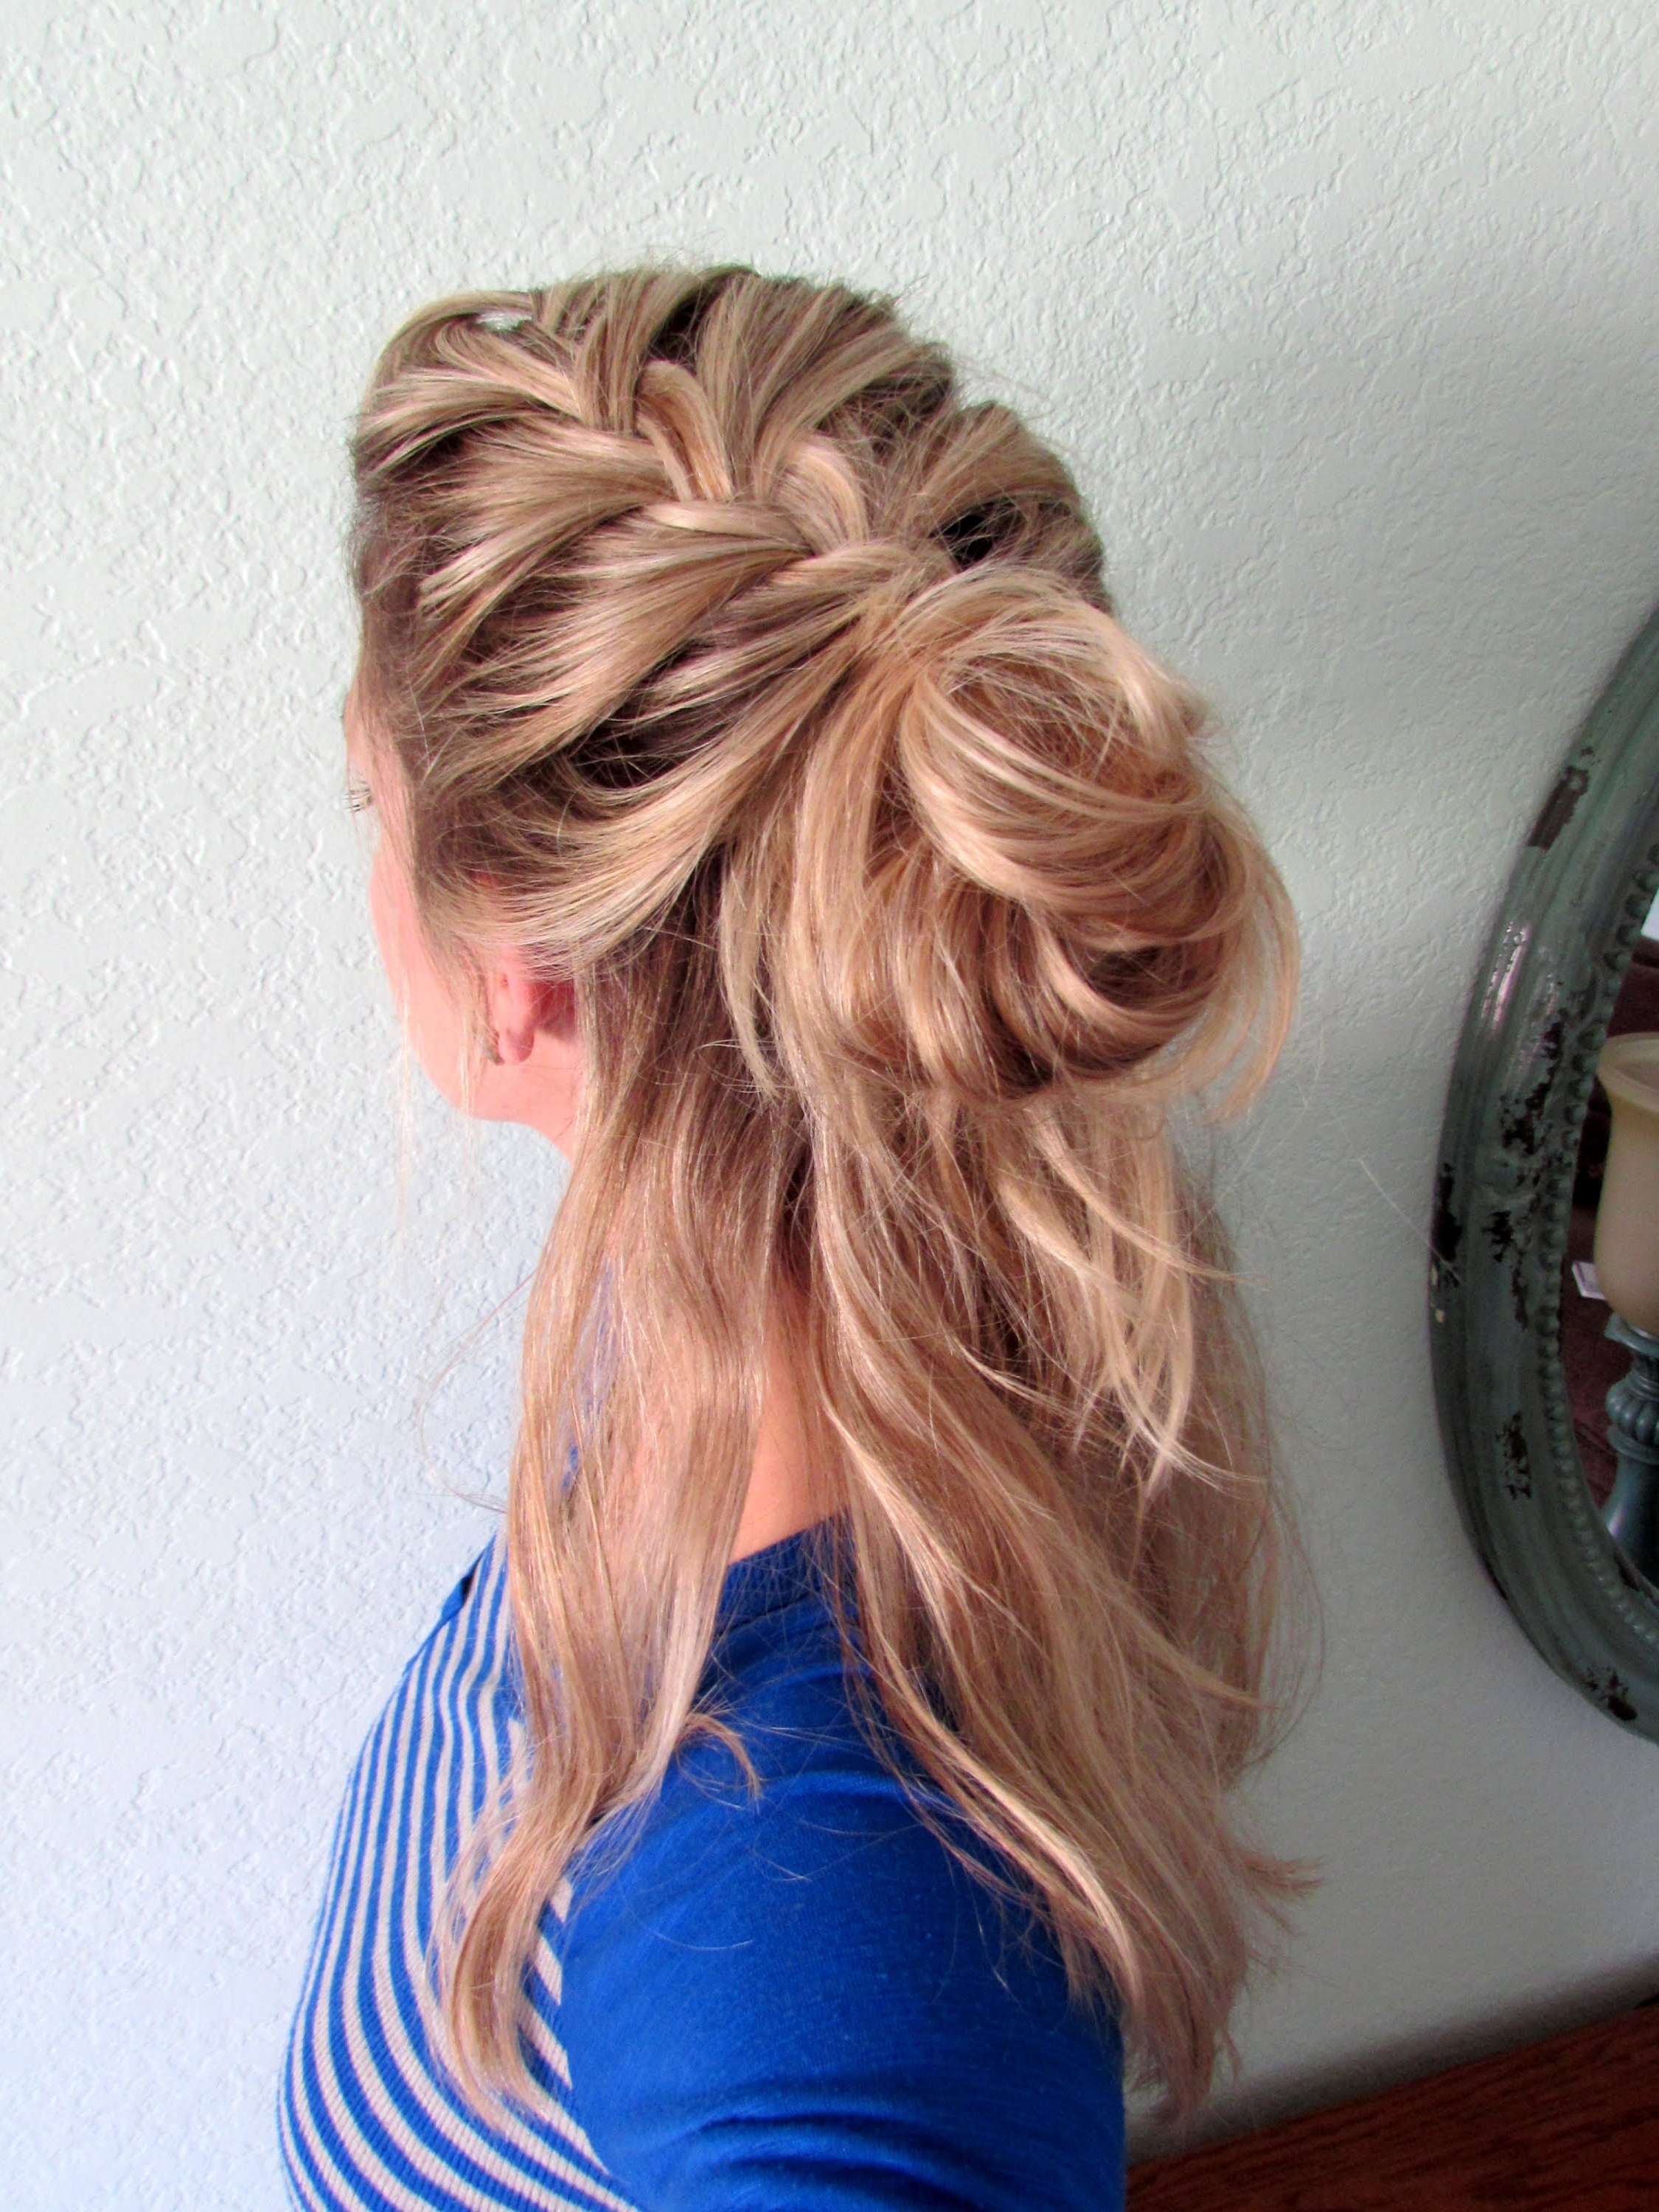 How To: Half Up French Braid Messy Bun – Youtube Within Most Popular Loose Side French Braid Hairstyles (View 9 of 15)